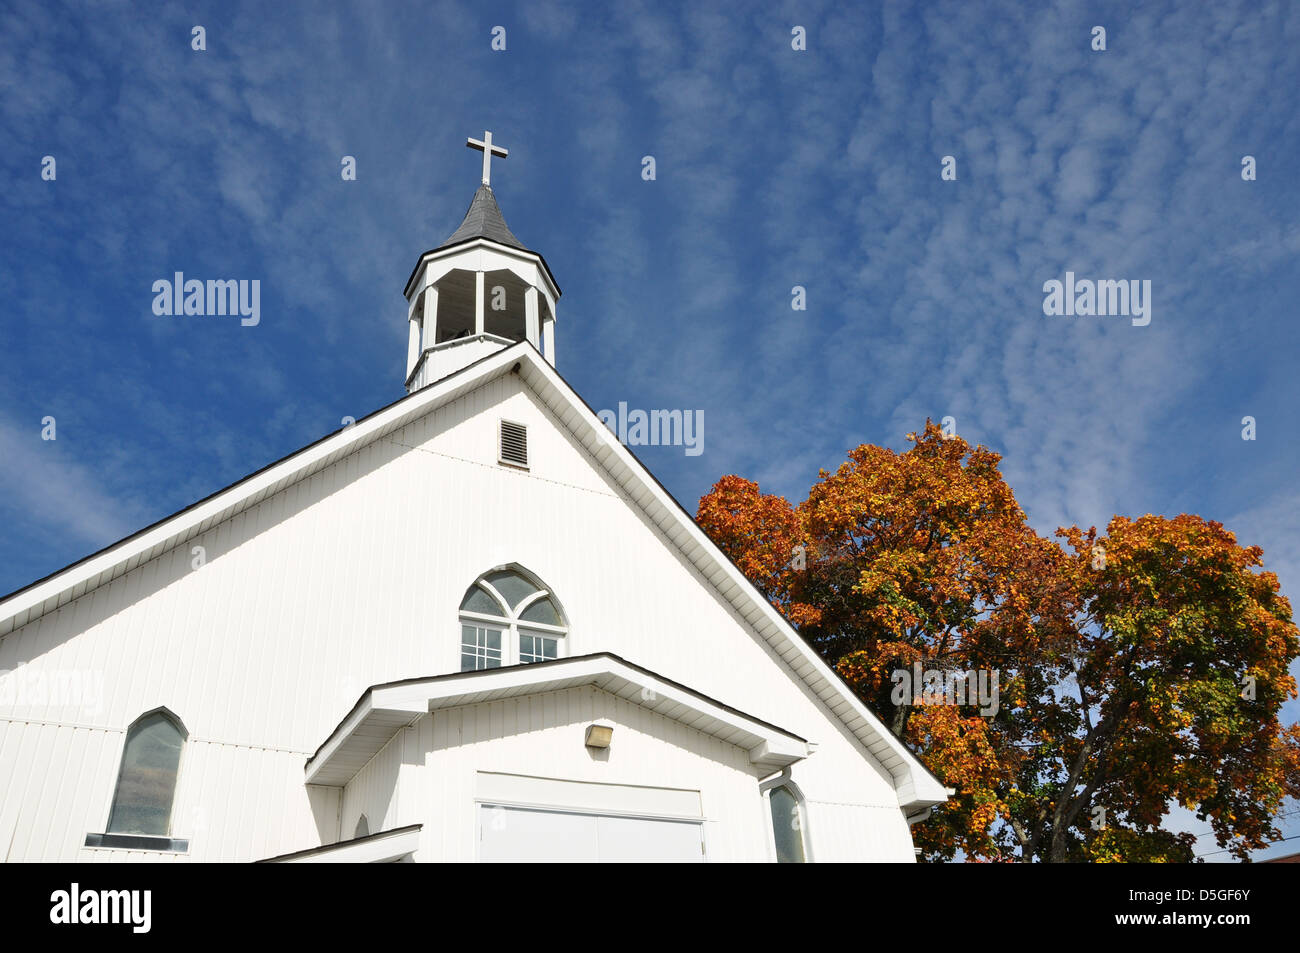 Our Lady of Sorrows Church - Stock Image